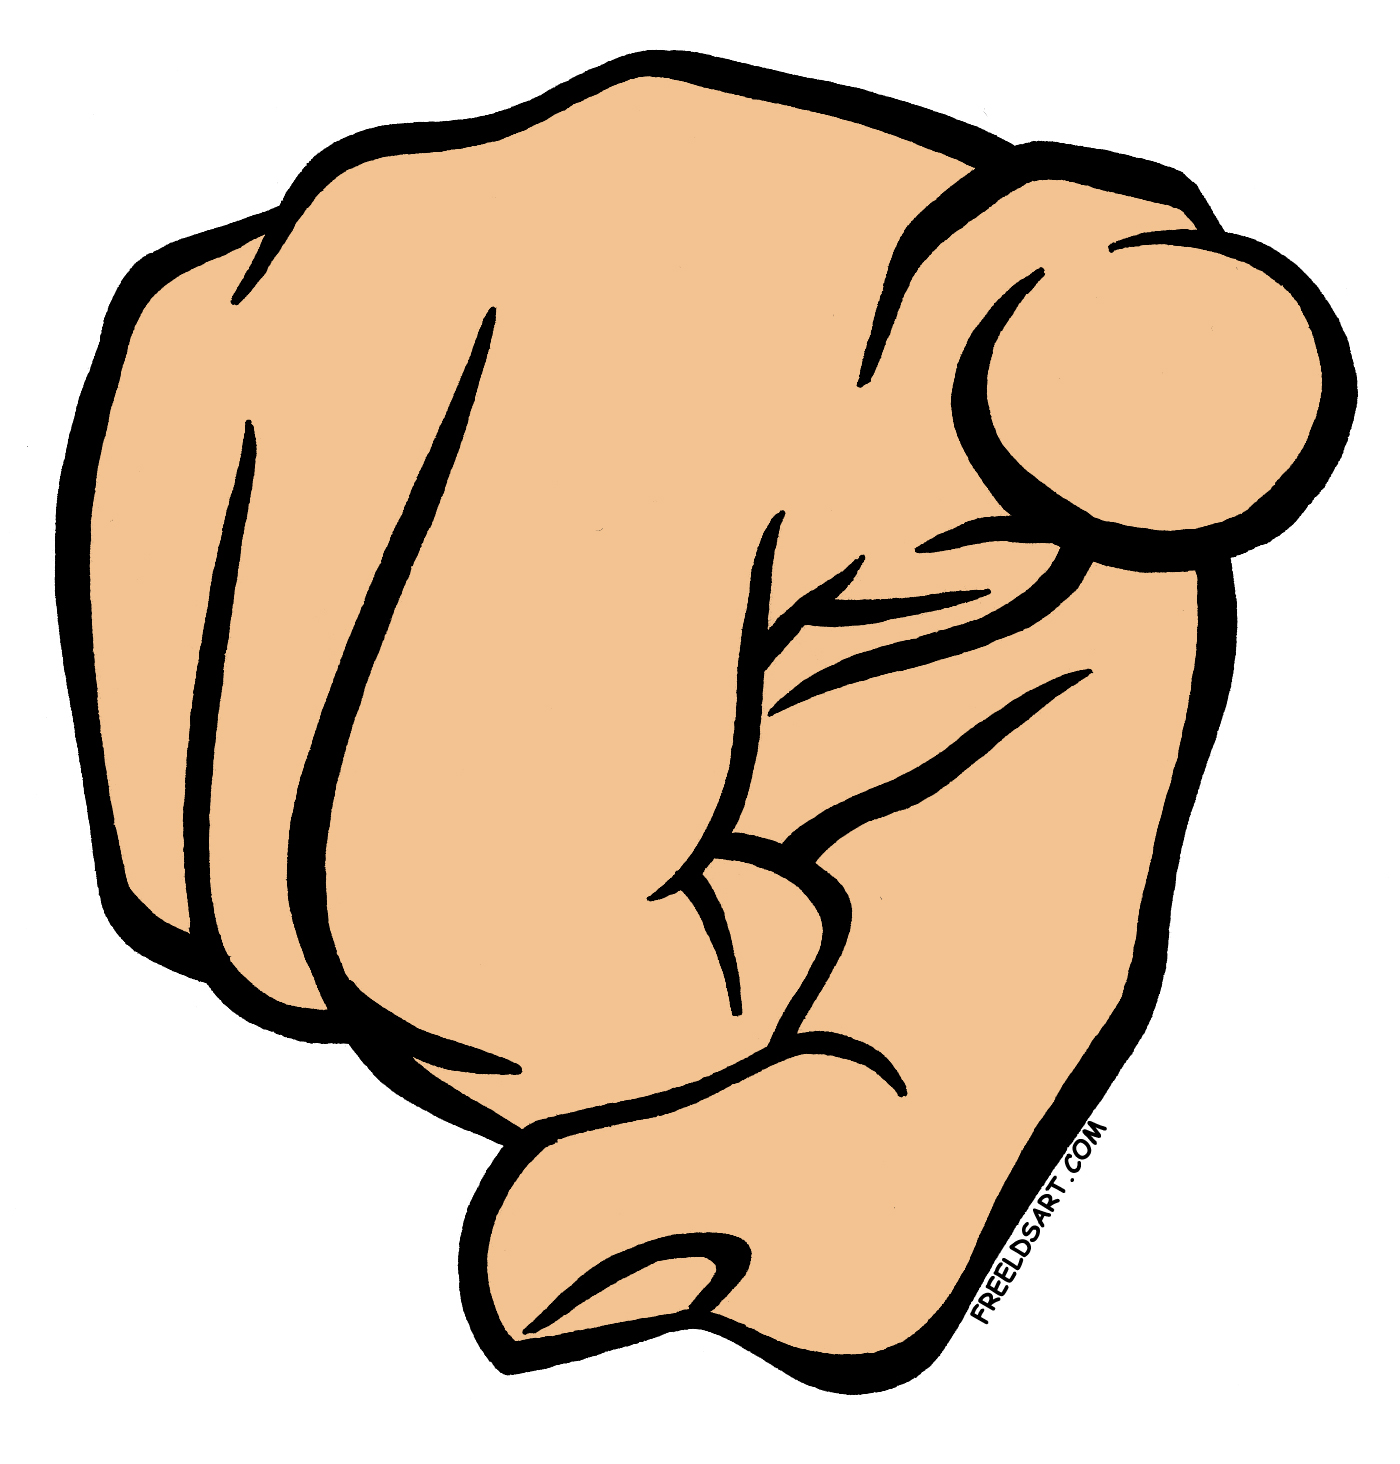 Me Pointing Finger Clipart #1 - Finger Pointing At You PNG